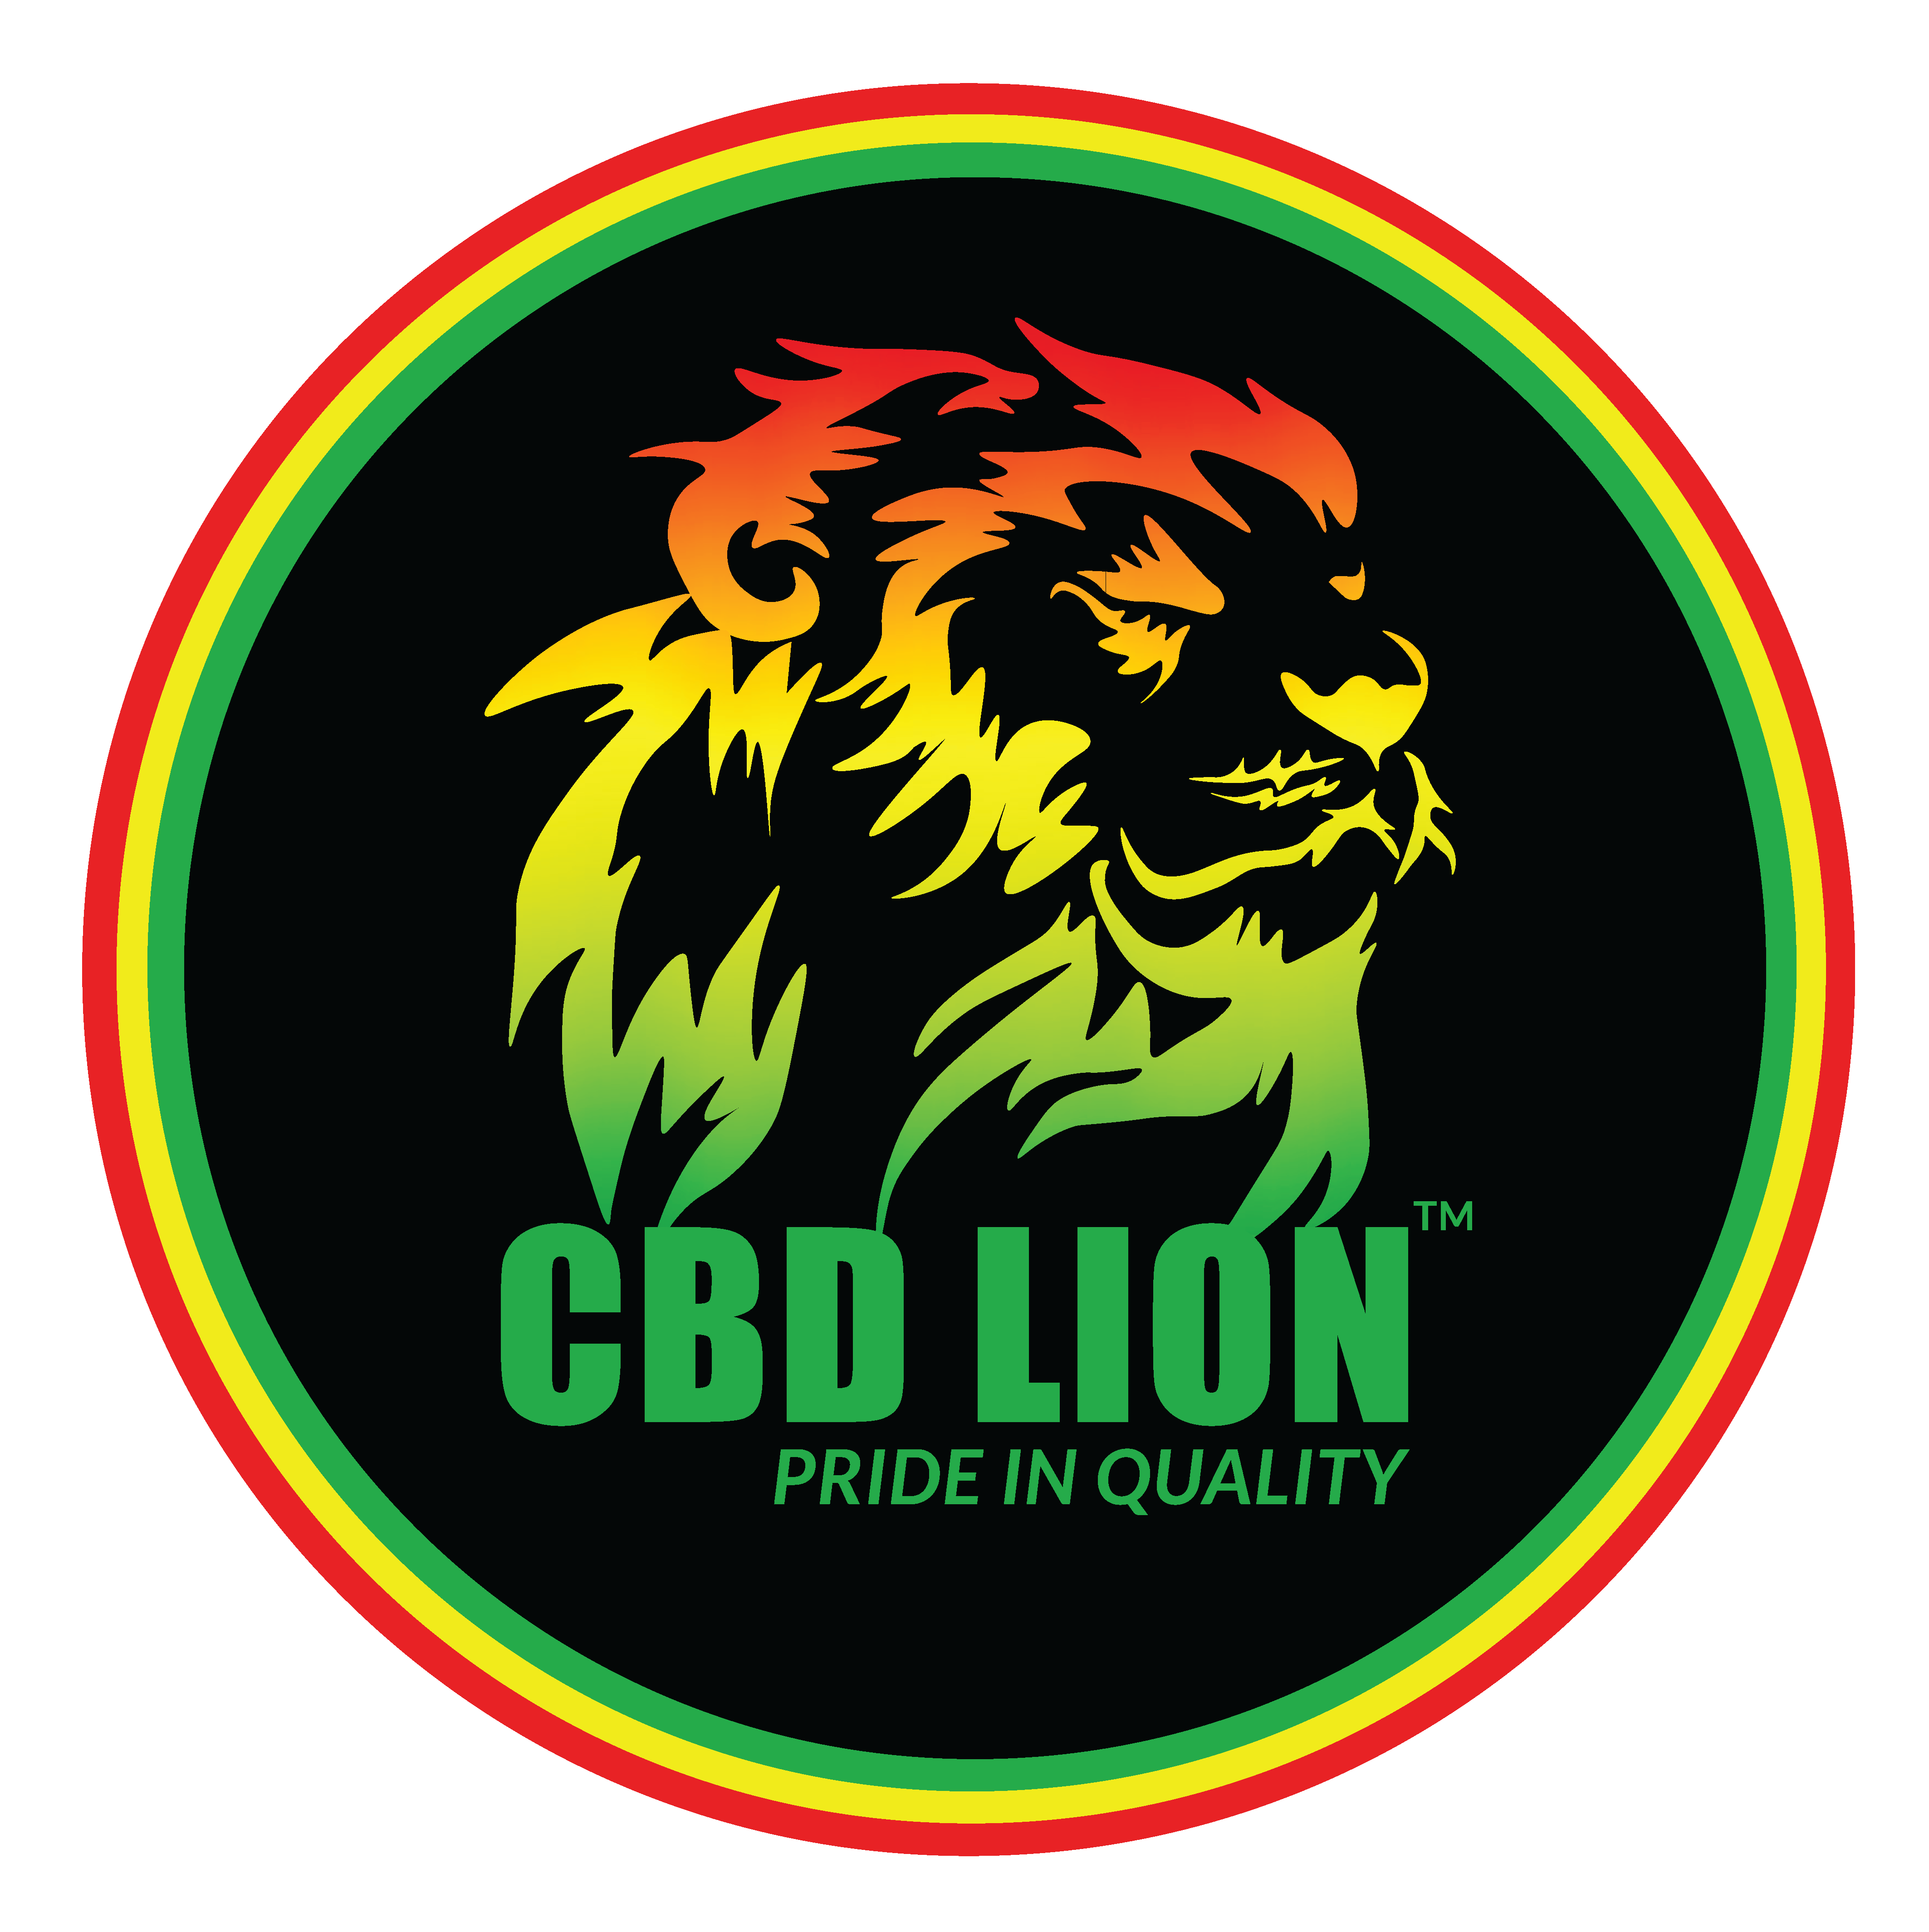 CBDLION_rasta circle tm logo-01.png